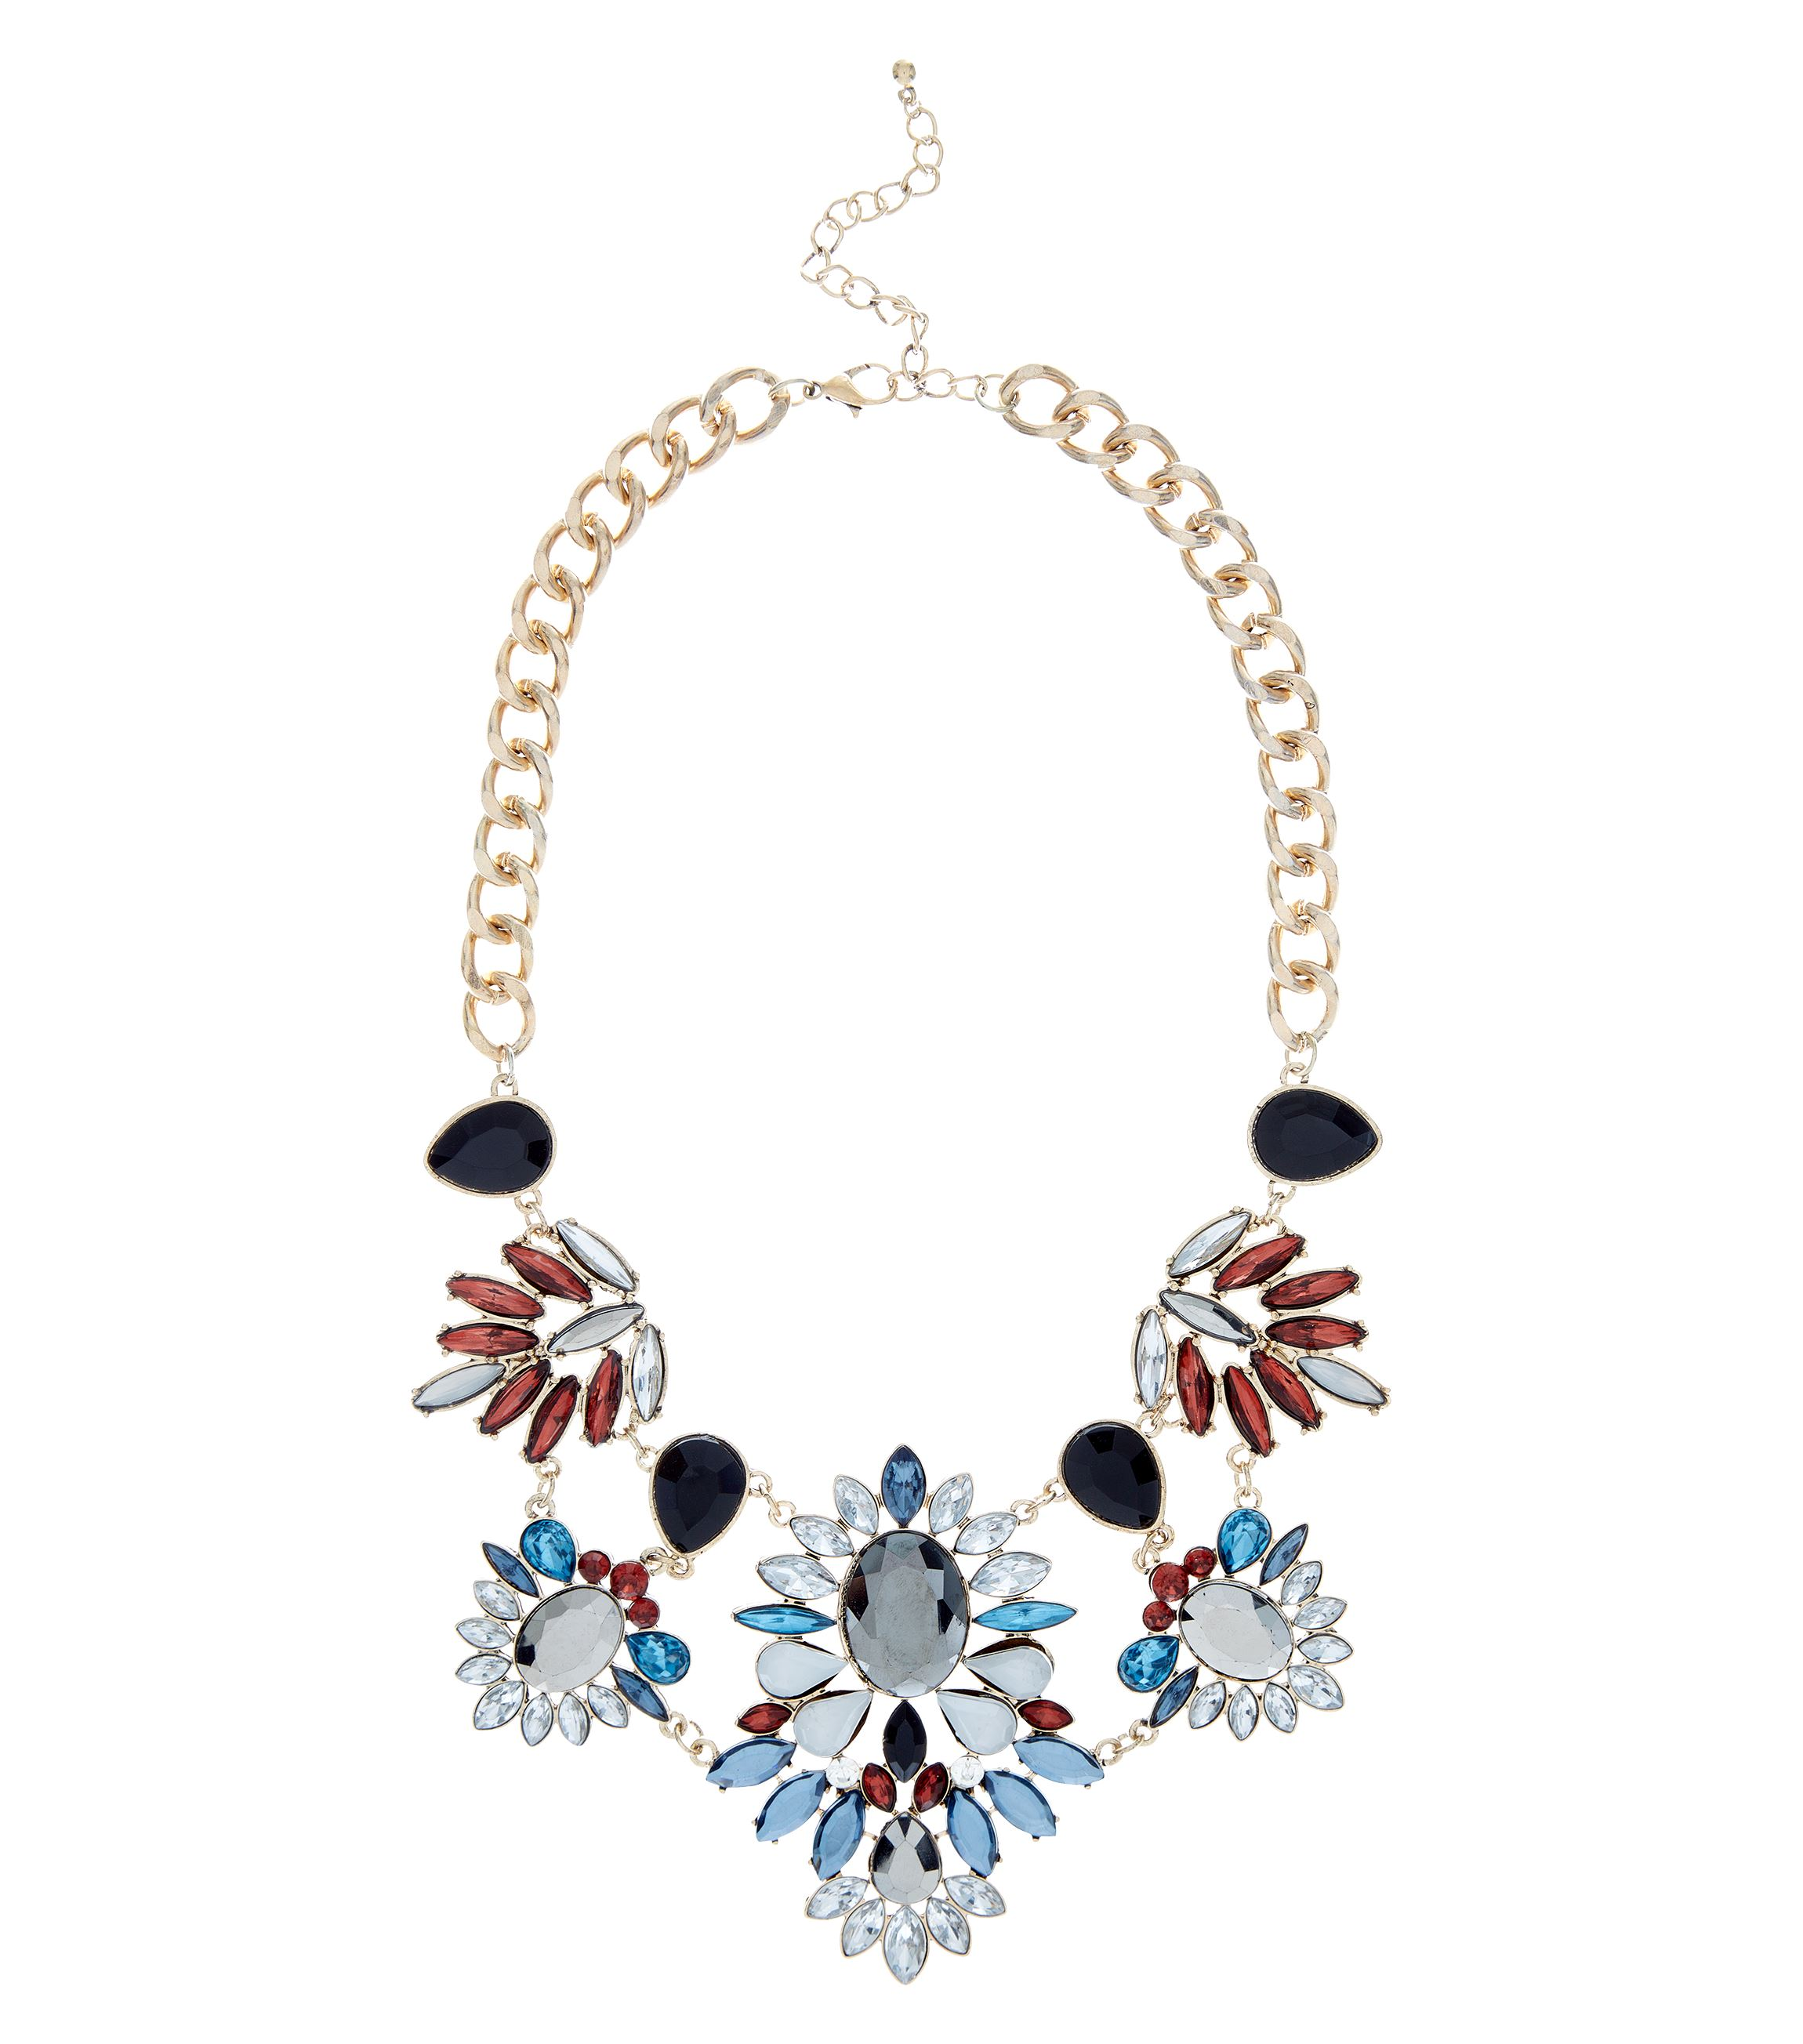 LIMITED Necklace - _19.99 - RP32 (2)